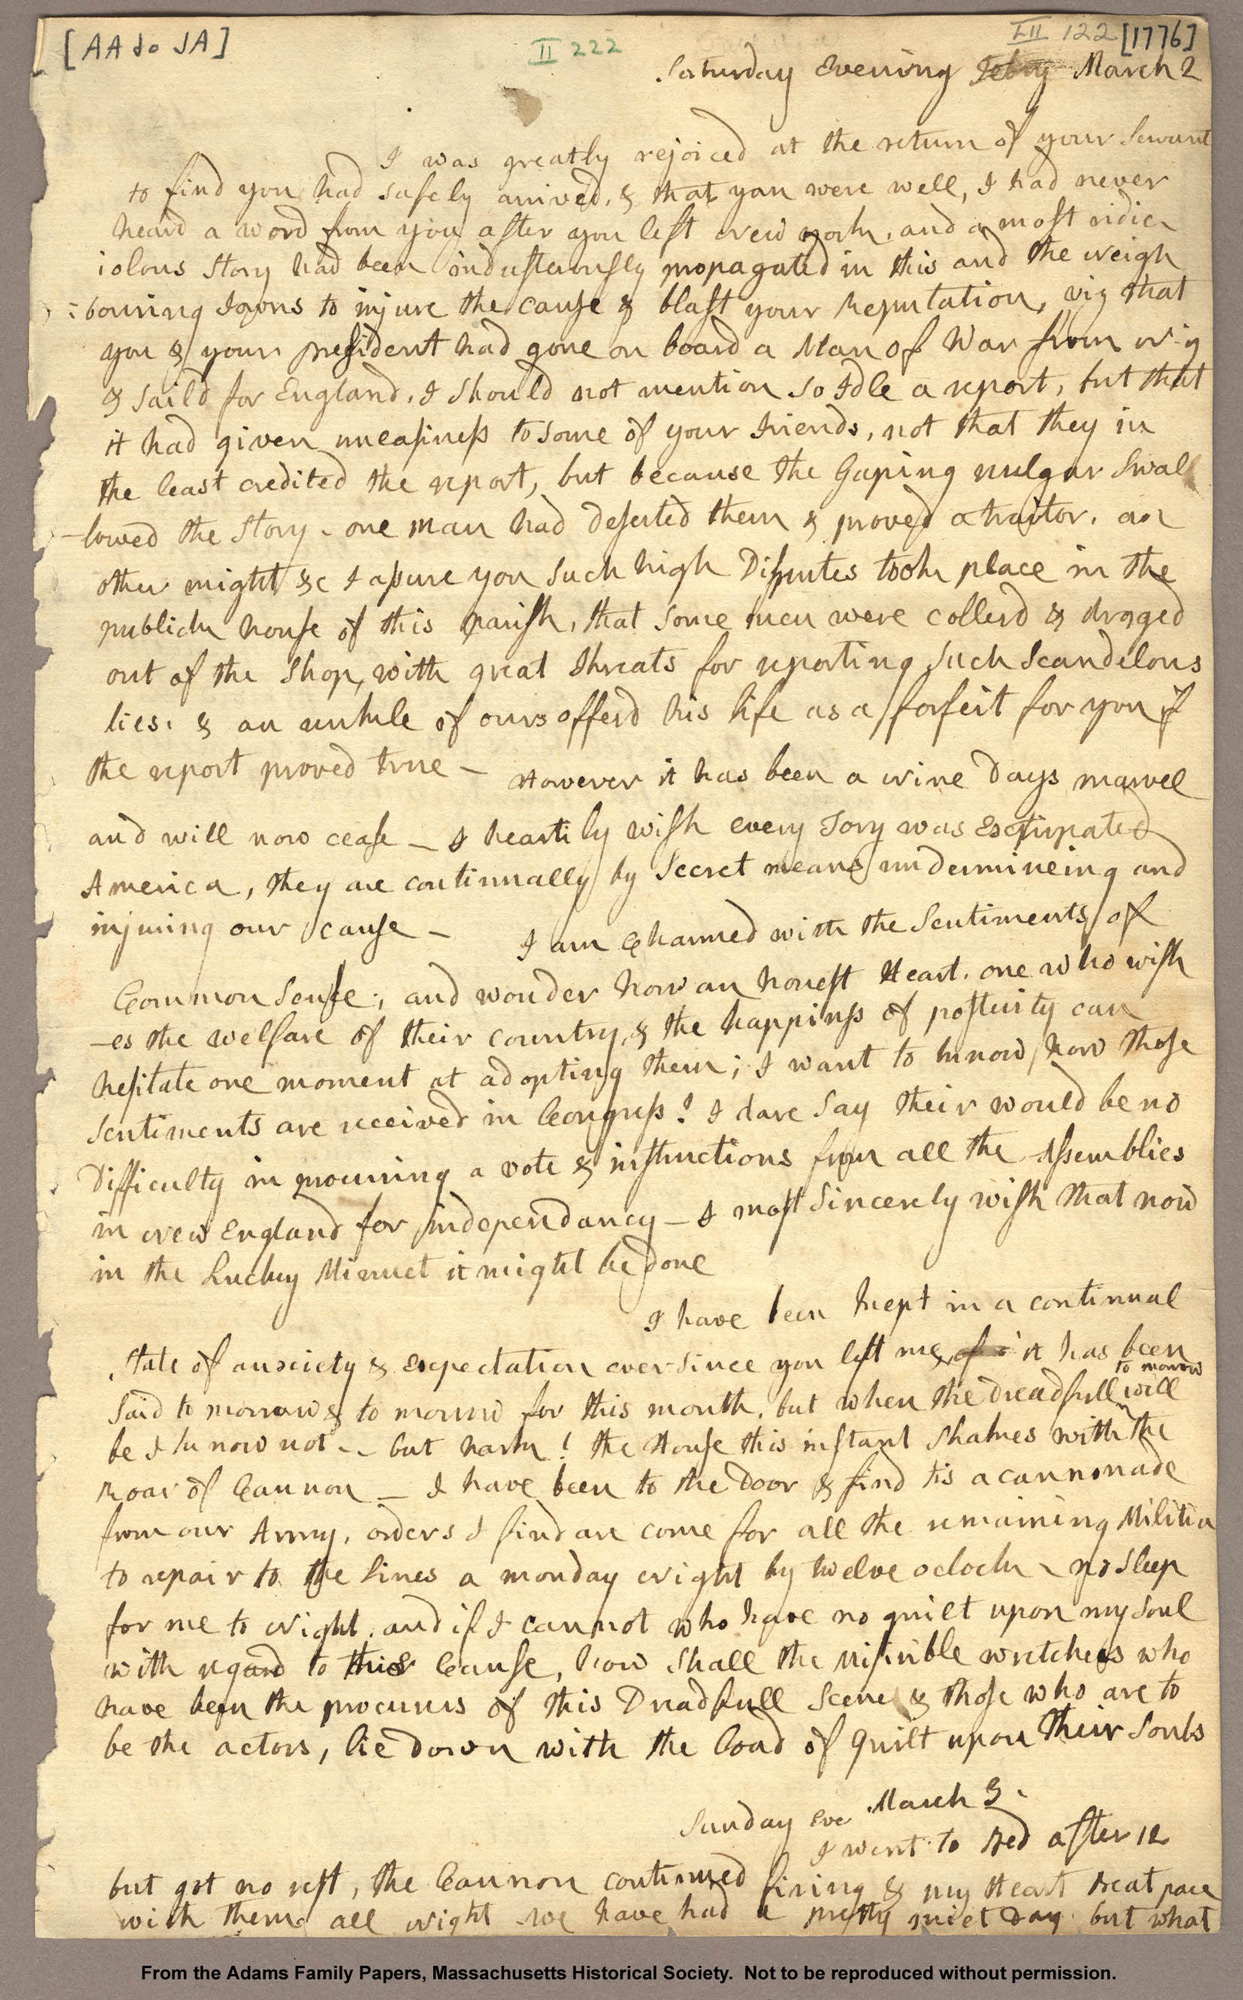 Letter from Abigail Adams to John Adams, 1776, quoting Julius